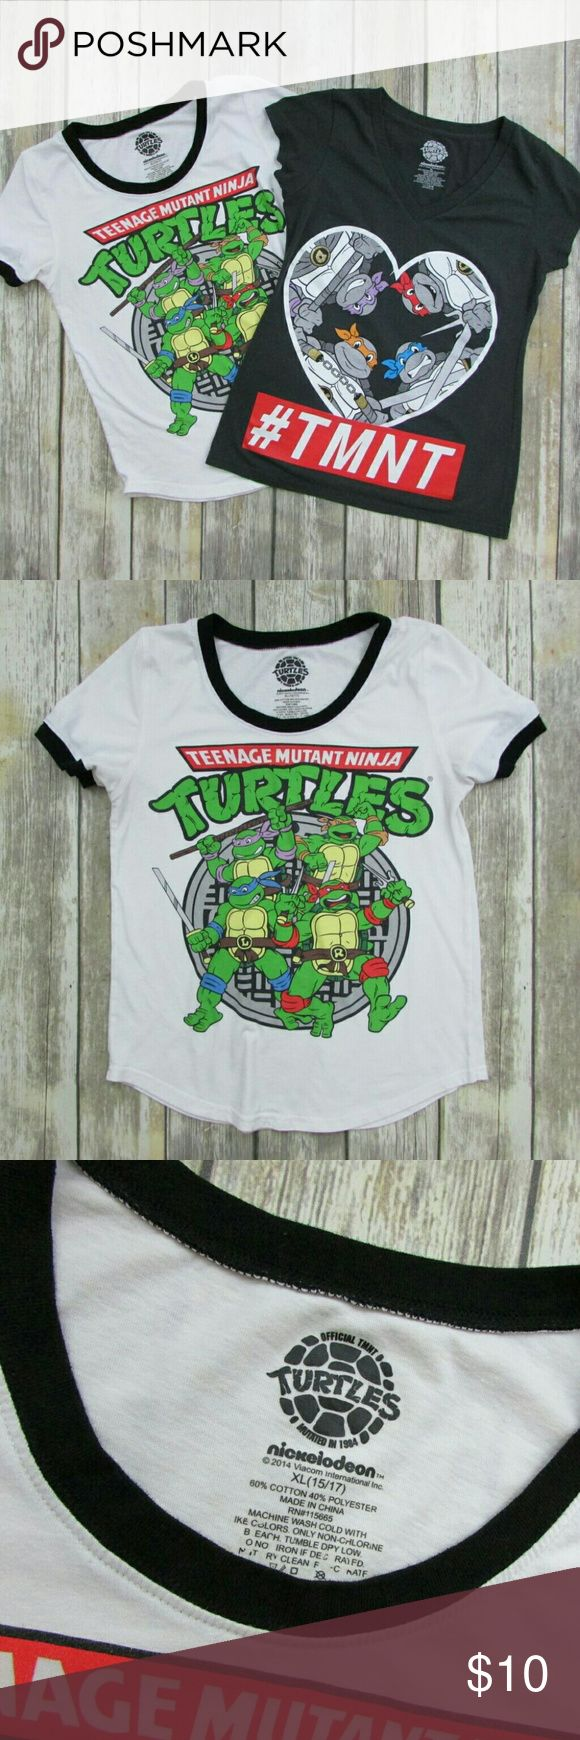 "Lot of 2 Nickelodeon Ninja Turtles Graphic T-Shirt Nickelodeon Teenage Mutant Ninja Turtles T-shirts features short sleeve, front graphic, and tag-free comfort.  Pre-owned in very good used condition.  White Tee: Bust 36"" / Waist 34"" / Length 25""  Gray Tee: Bust 34"" / Waist 32"" / Length 26""  • Size: XL (Juniors) • Color: White, Gray • Material: Cotton, Polyester • Lot Includes: 2 x T-shirts • Item#: CW095 Nickelodeon Tops Tees - Short Sleeve"